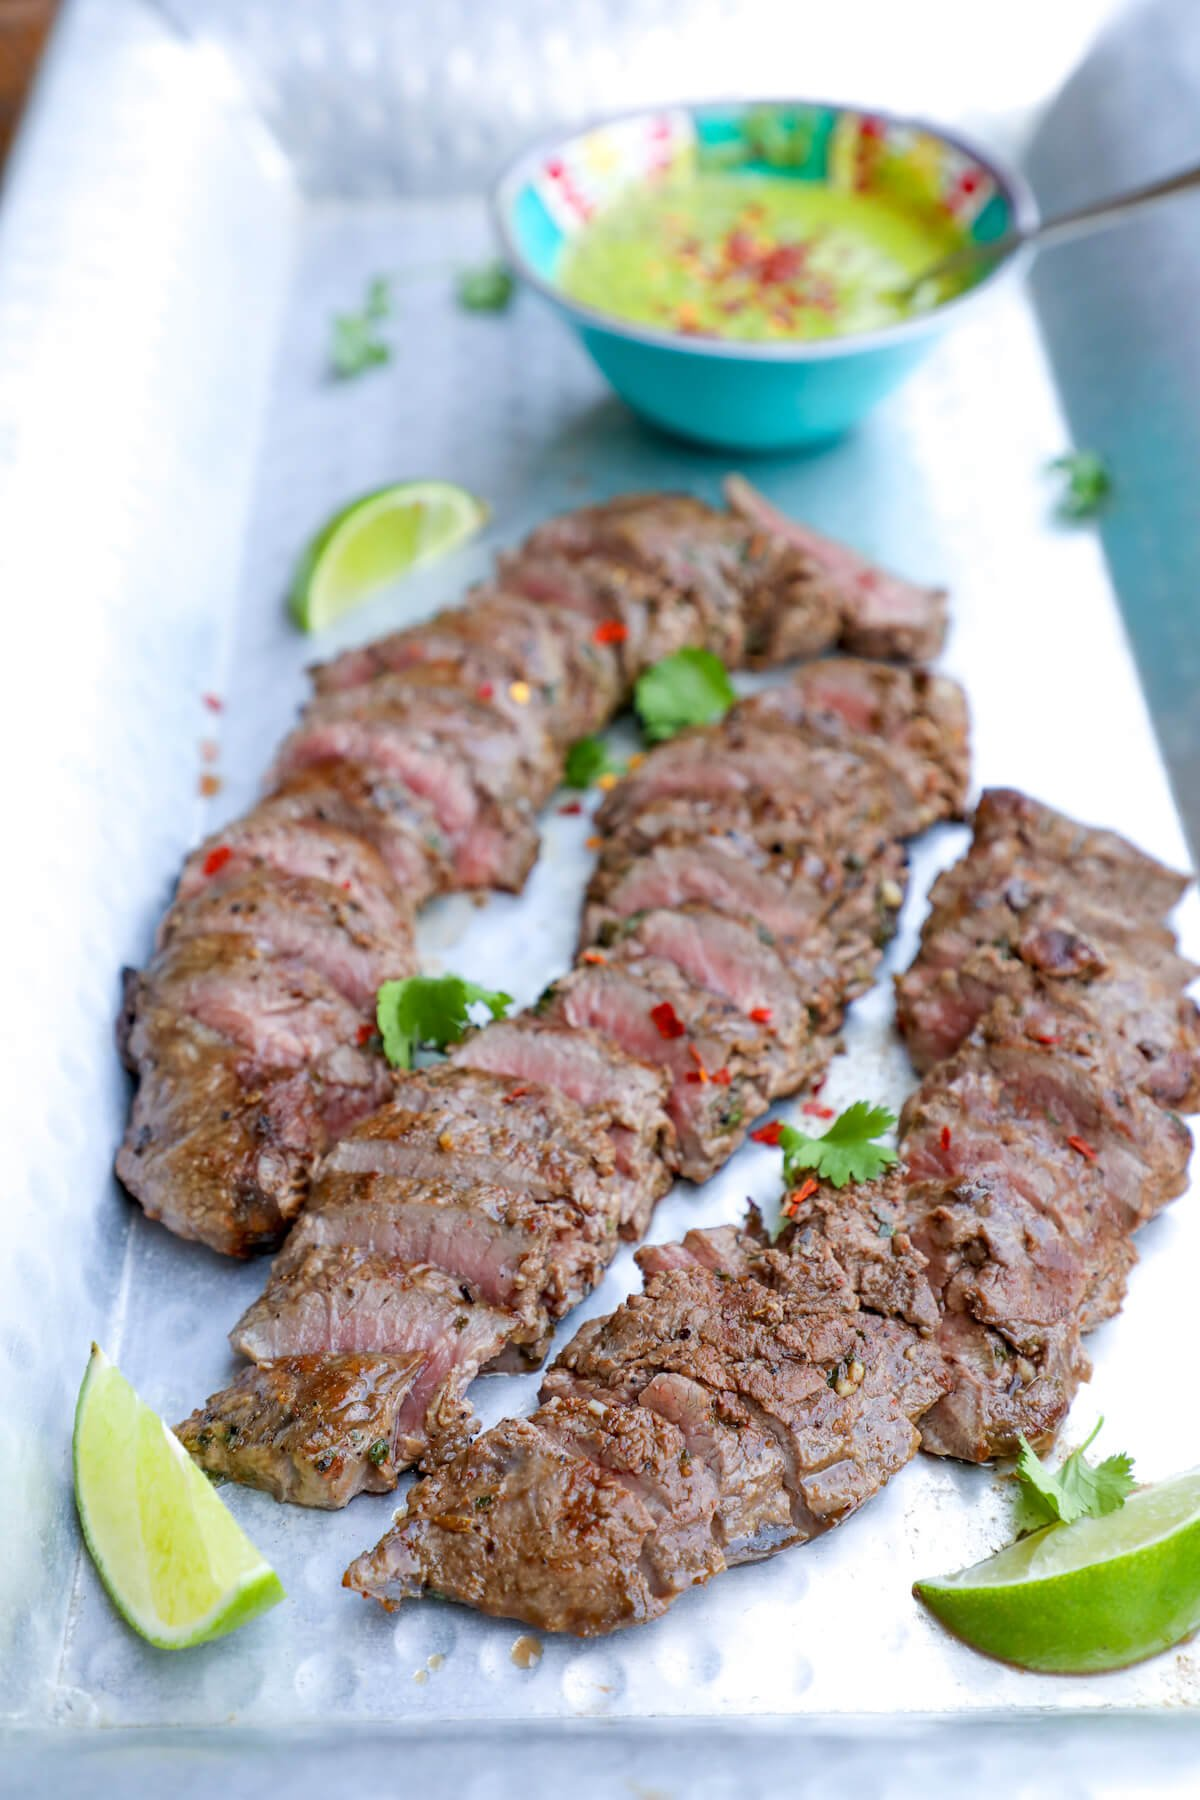 This Keto Carne Asada & Chimichurri Sauce is the perfect low carb grilling recipe for summer entertaining!  Whole 30, Paleo, Atkins, Nut Free, Egg Free, and Dairy Free!